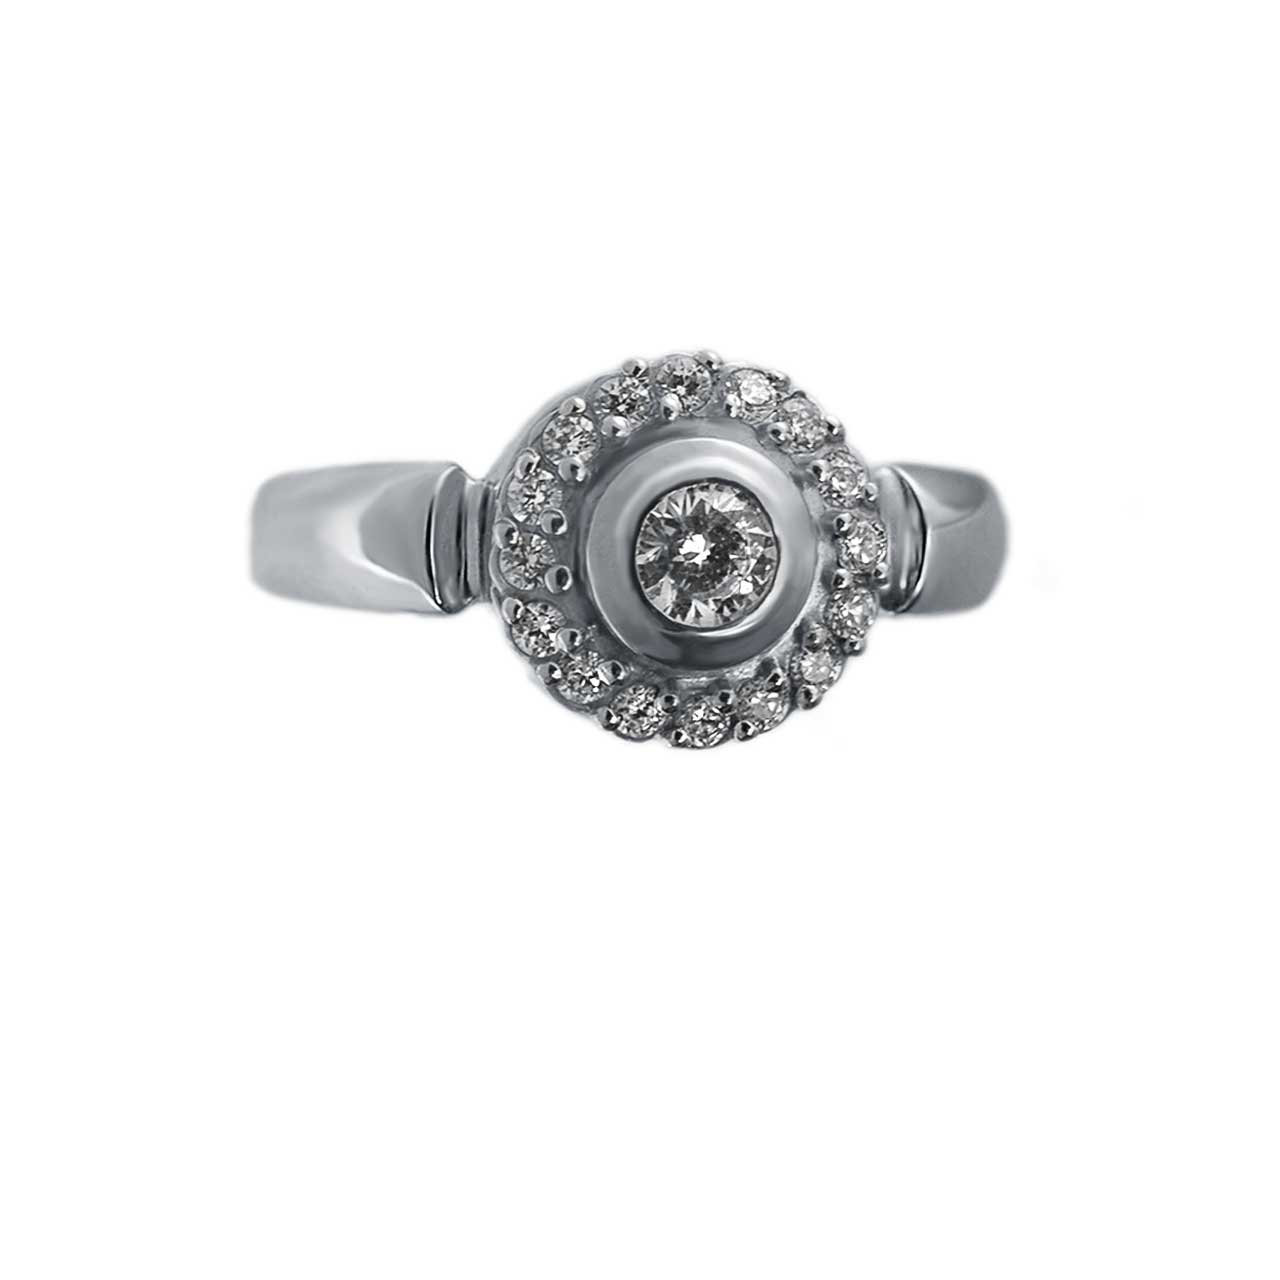 Palladium gold diamond ring from Russia 3